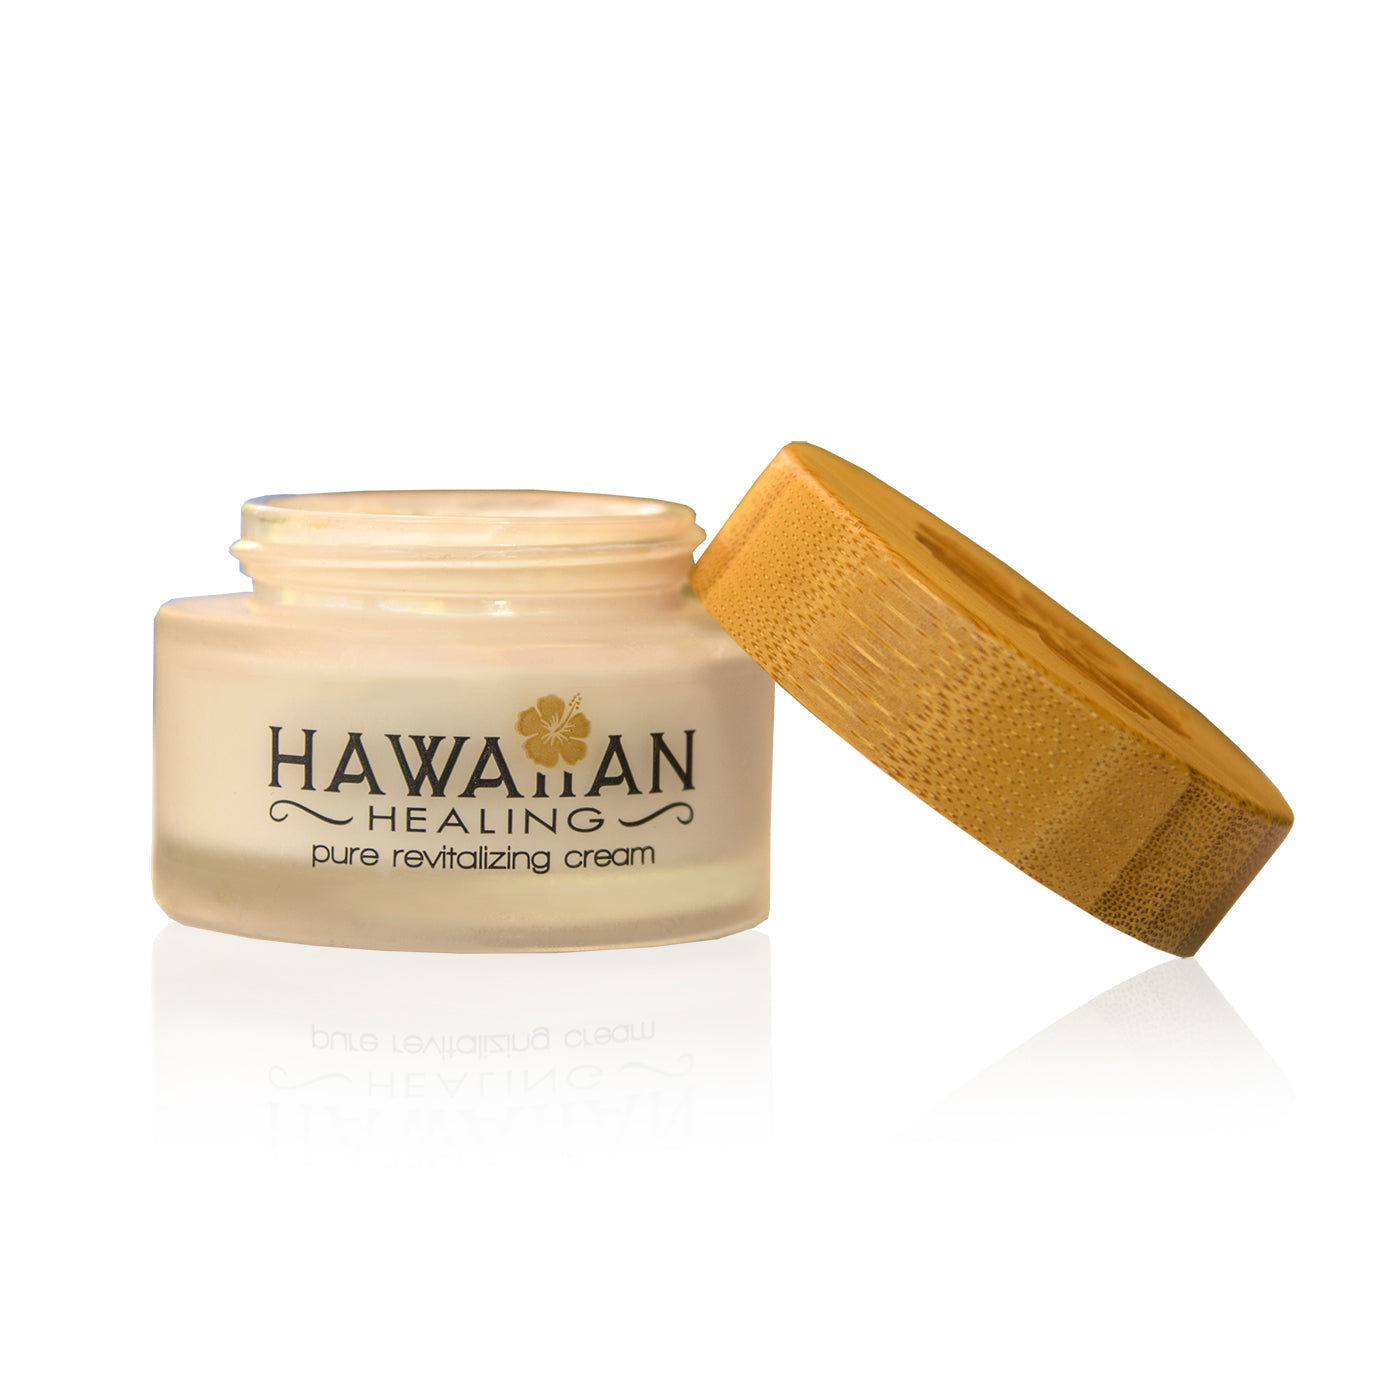 Hawaiian Pure Revitalizing Cream (50g Jar)